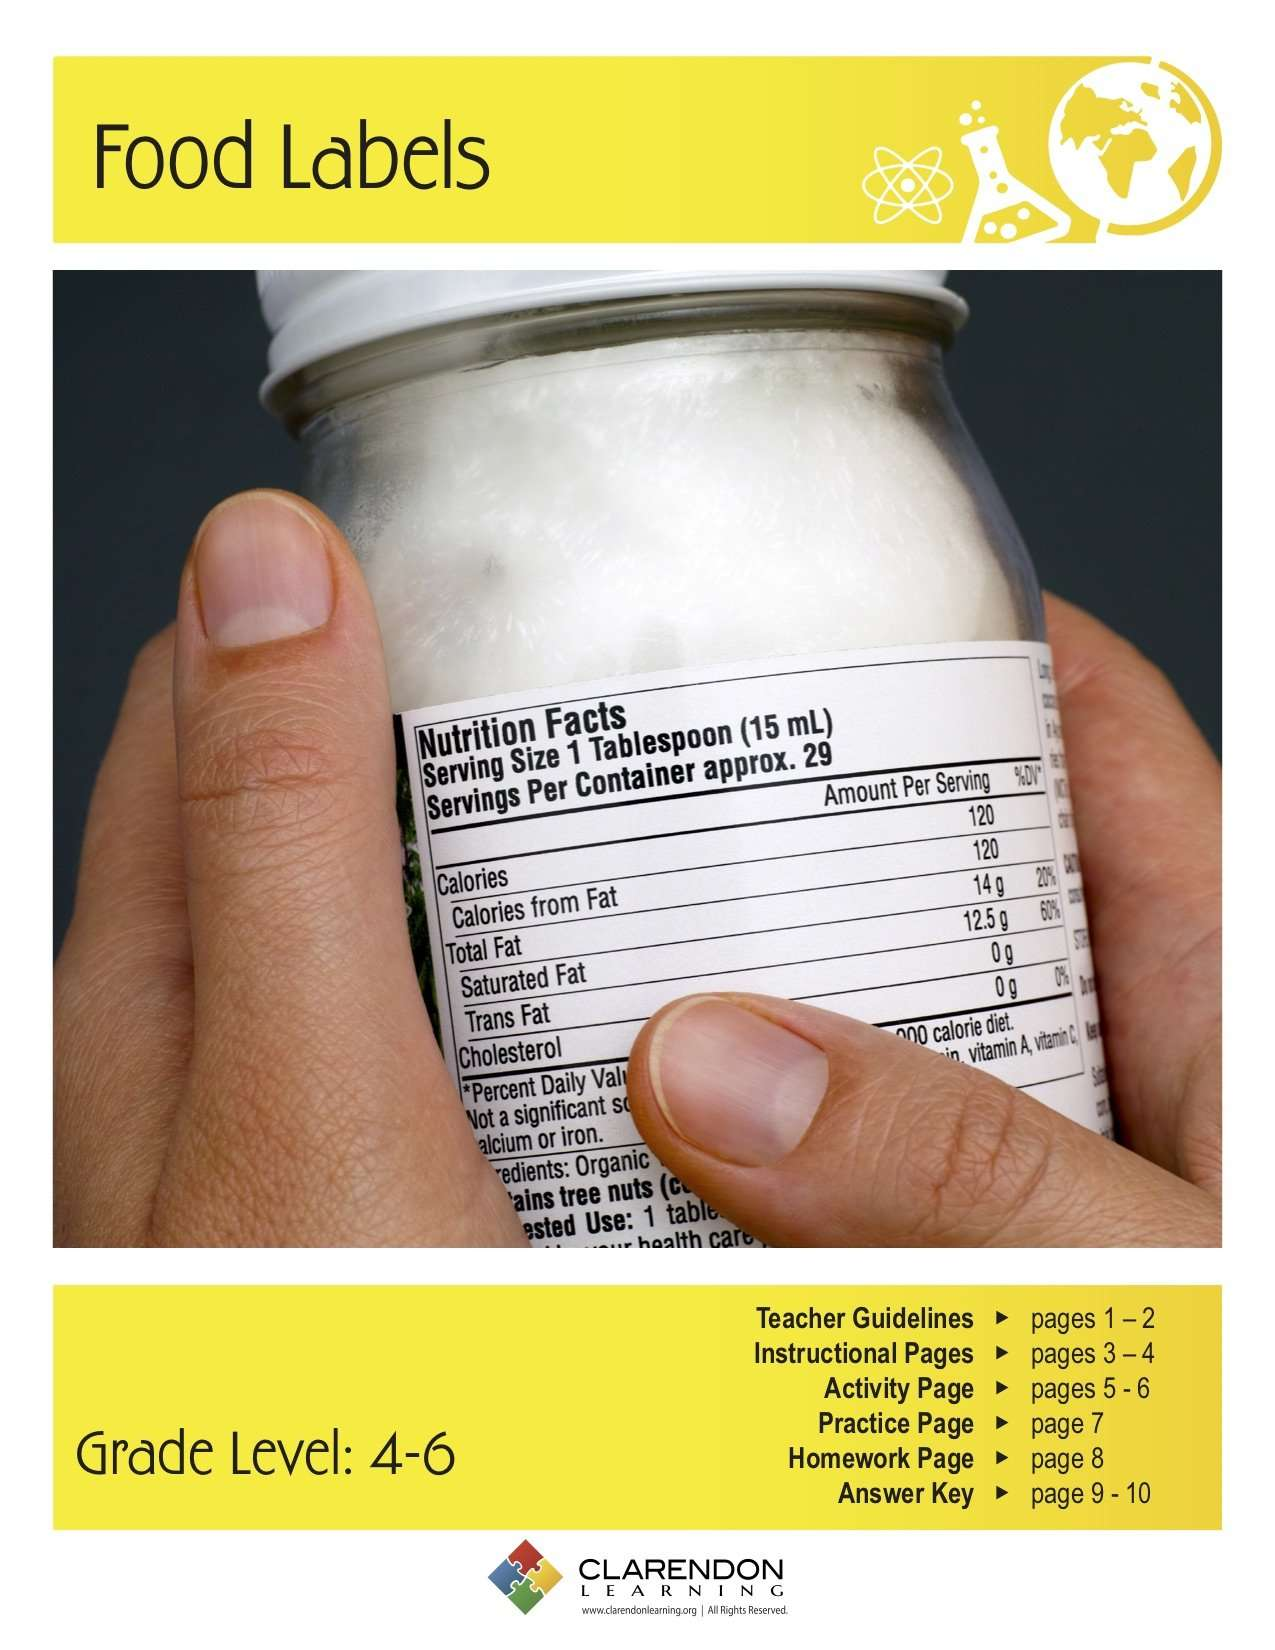 Food Labels Lesson Plan Clarendon Learning [ 1650 x 1275 Pixel ]